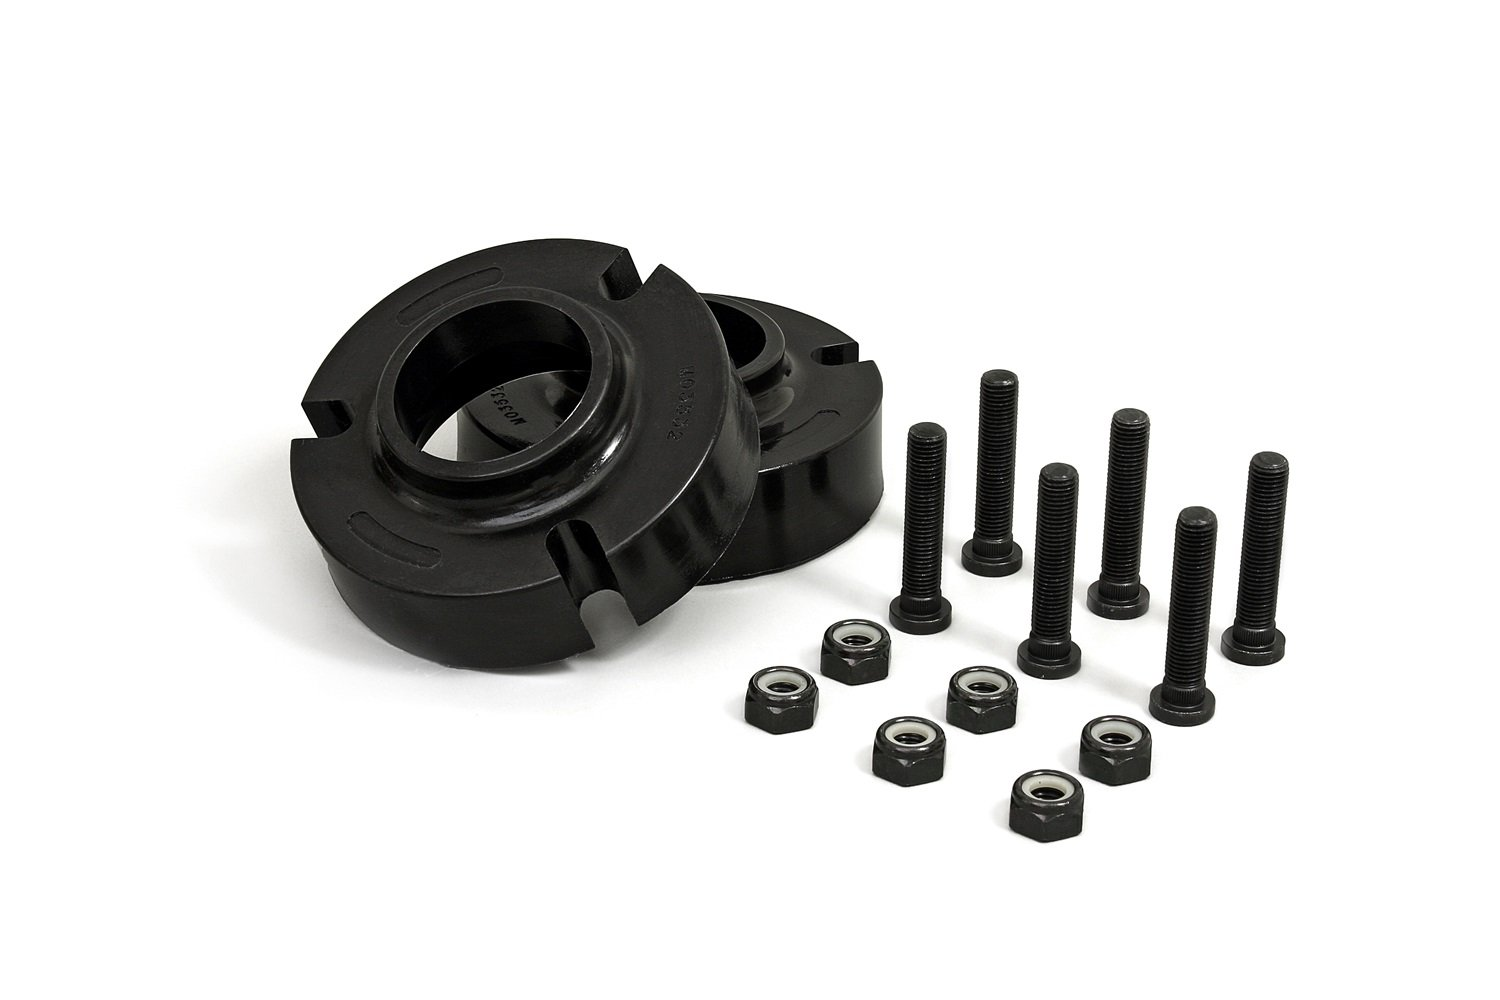 fits 2003 to 2009 2//4WD Toyota 4Runner 1 Leveling Kit all cabs KT09117BK all transmissions Made in America Black Toyota 4Runner 1 Leveling Kit Daystar